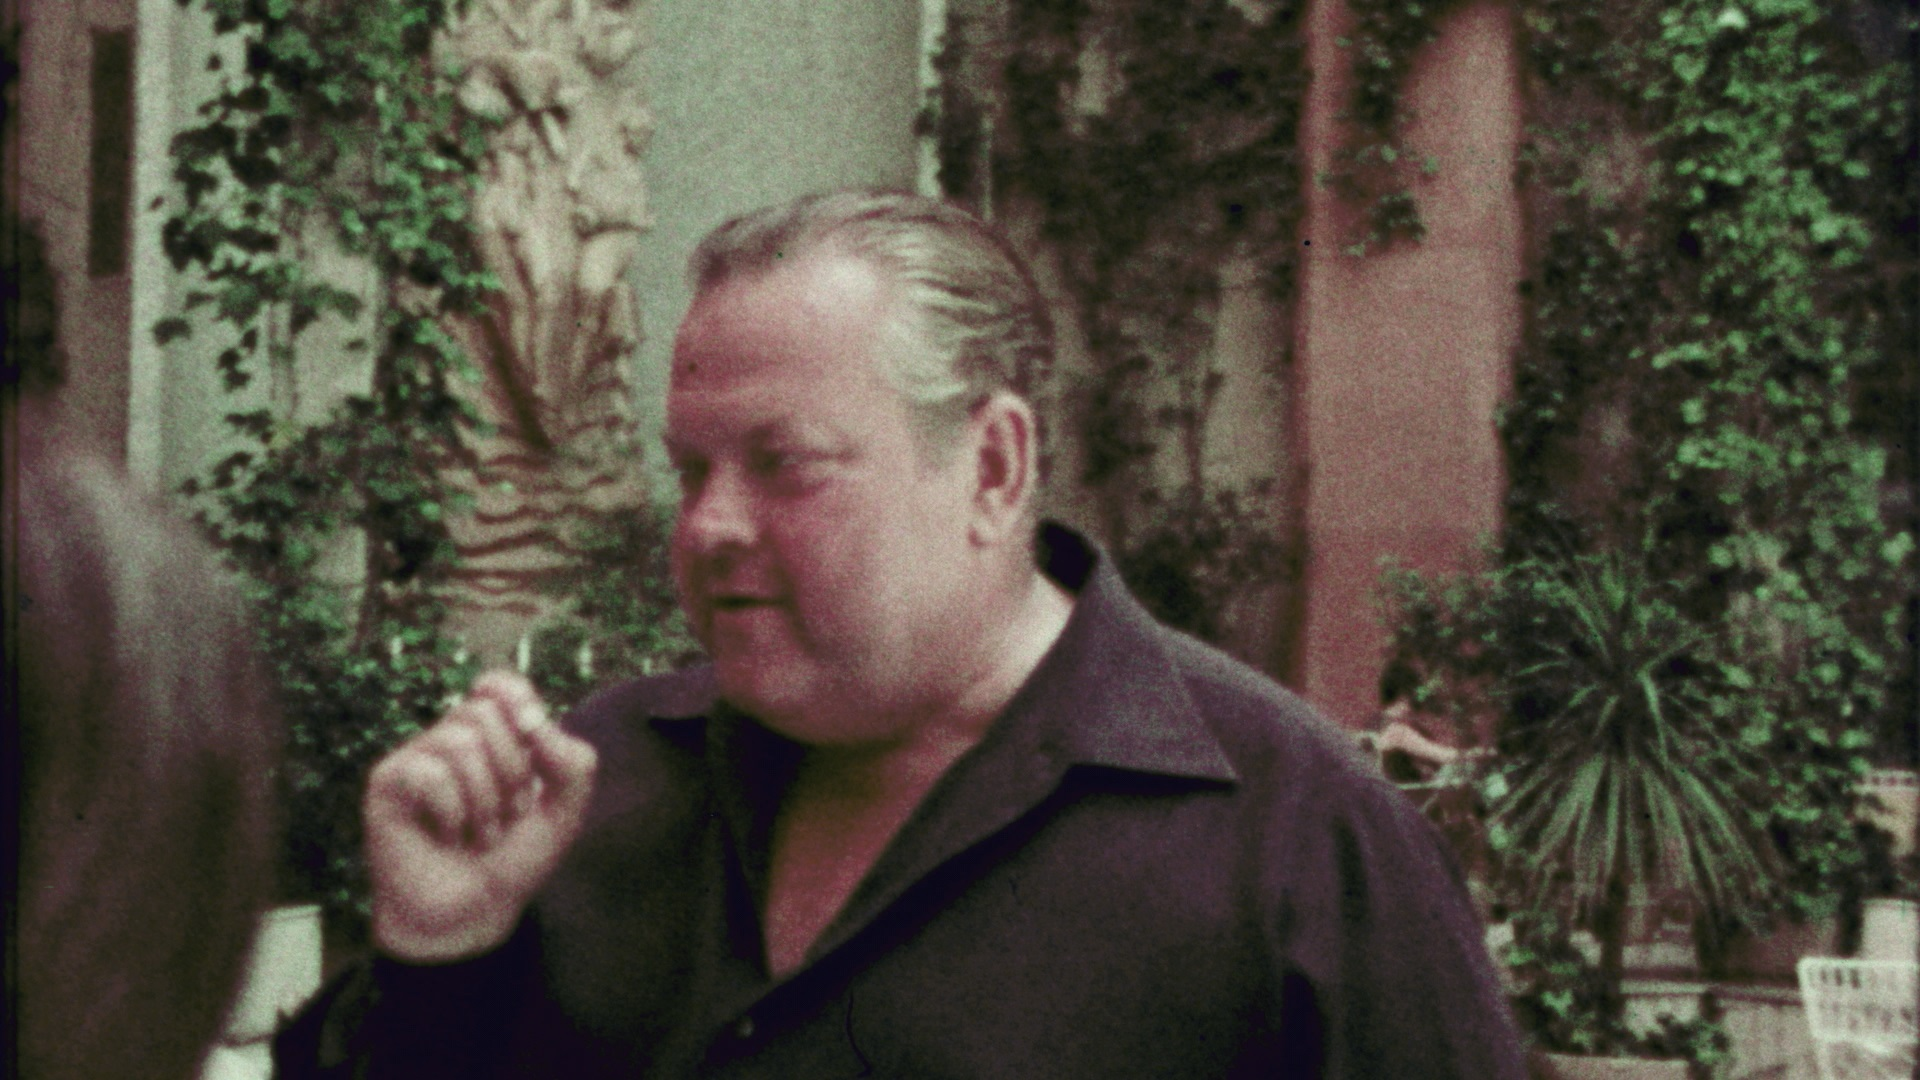 The strange story of Orson Welles' final years